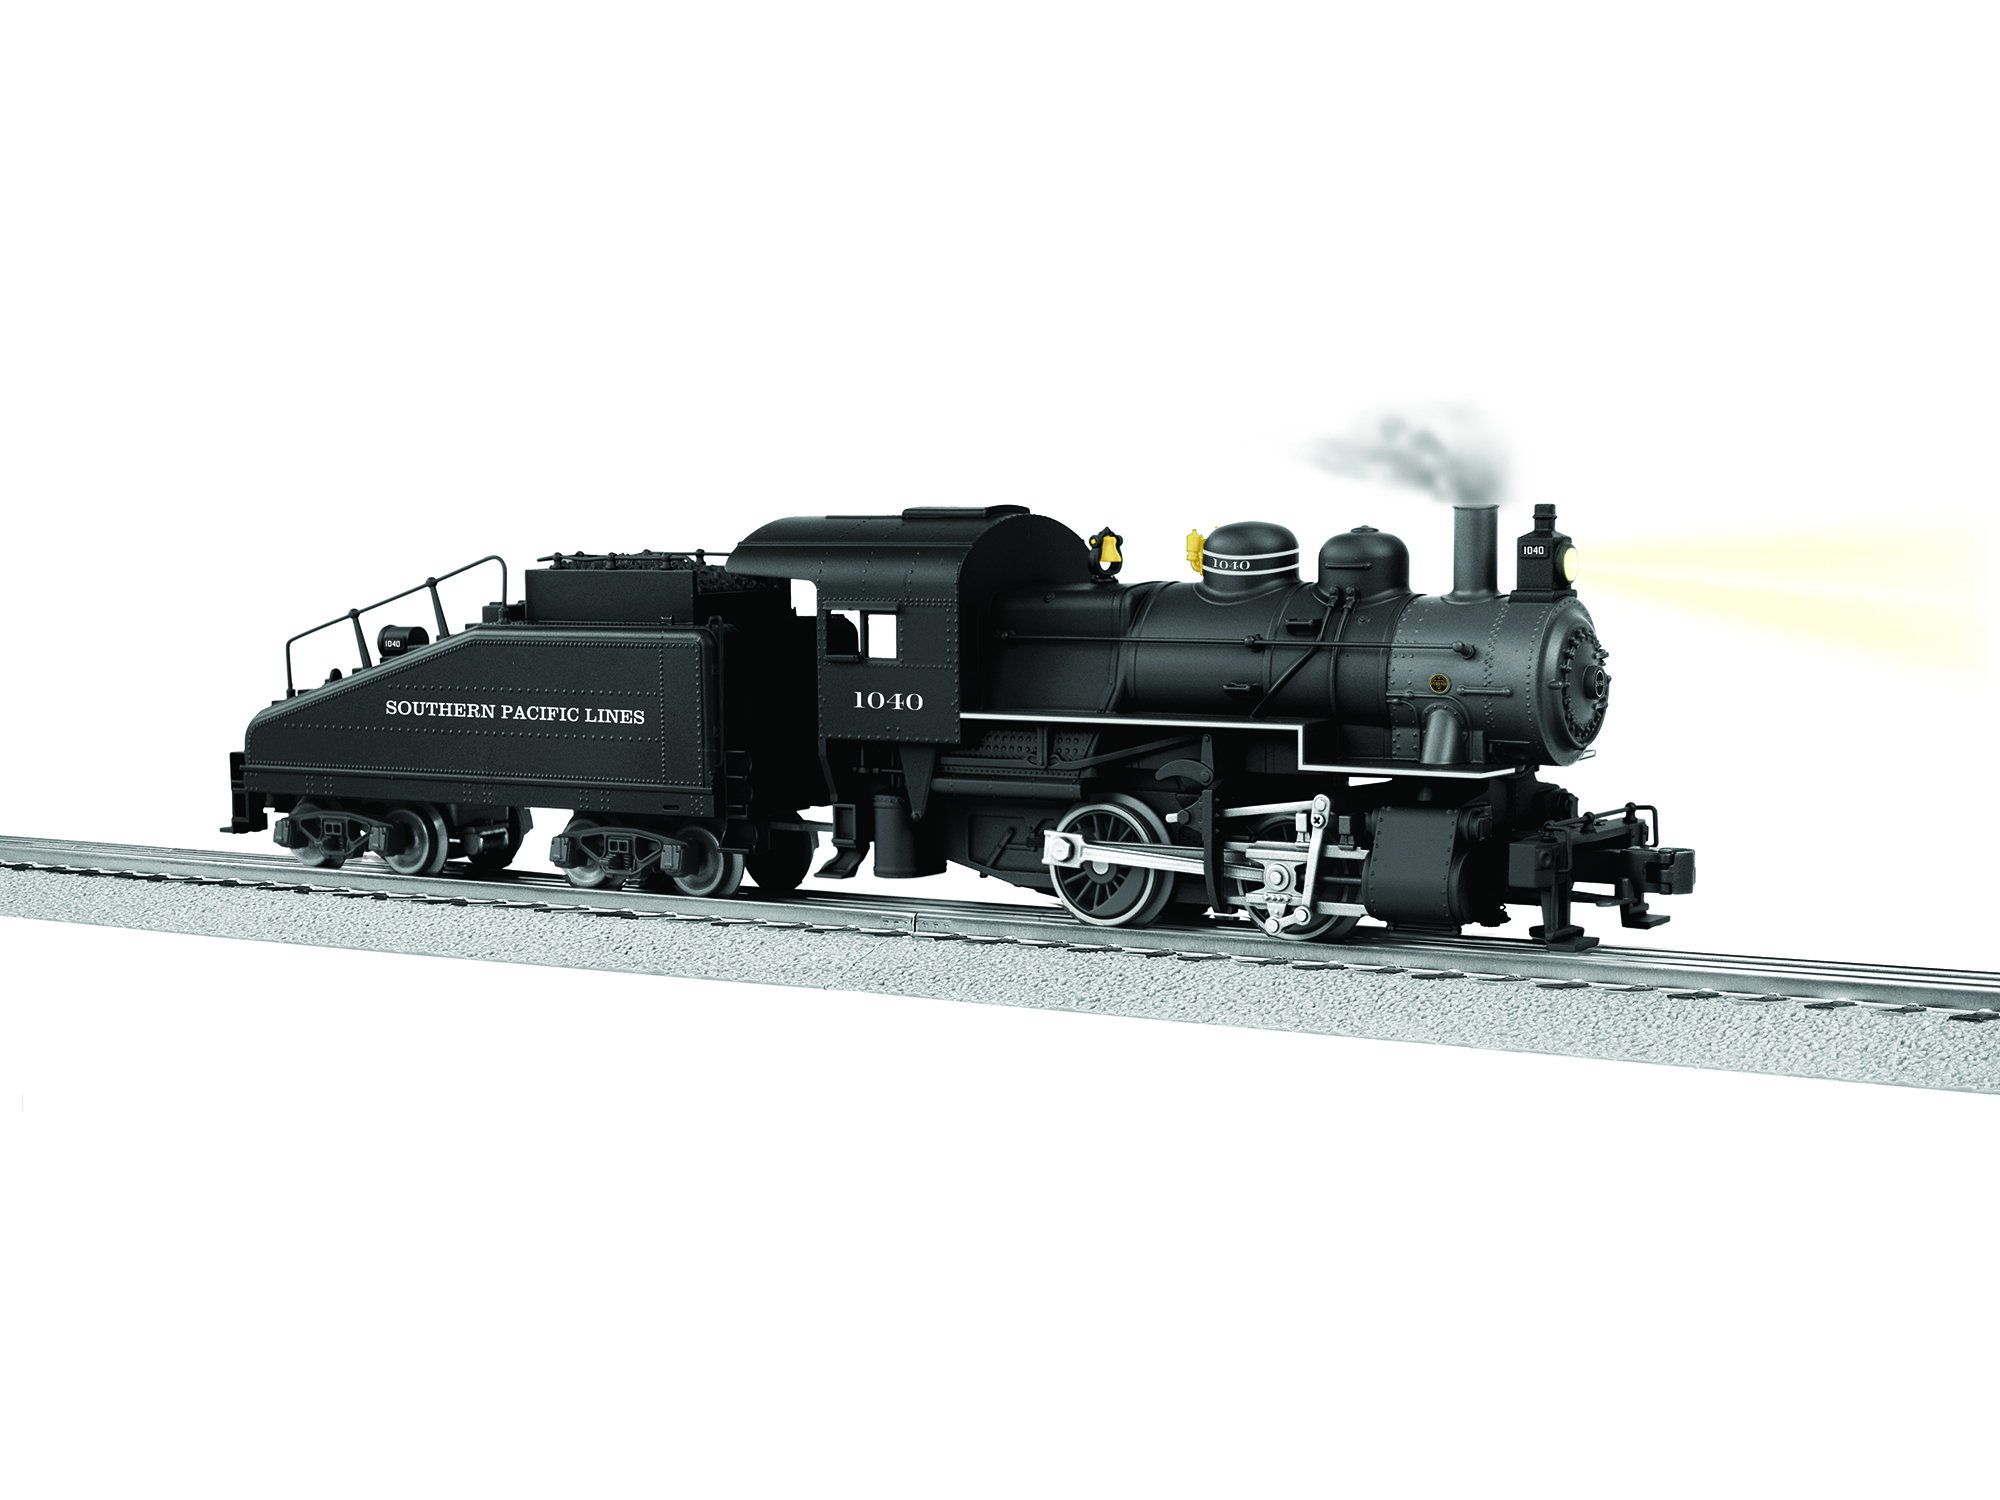 6-82974 SOUTHERN PACIFIC LIONCHIEF™ PLUS A5 0-4-0 STEAM LOCO